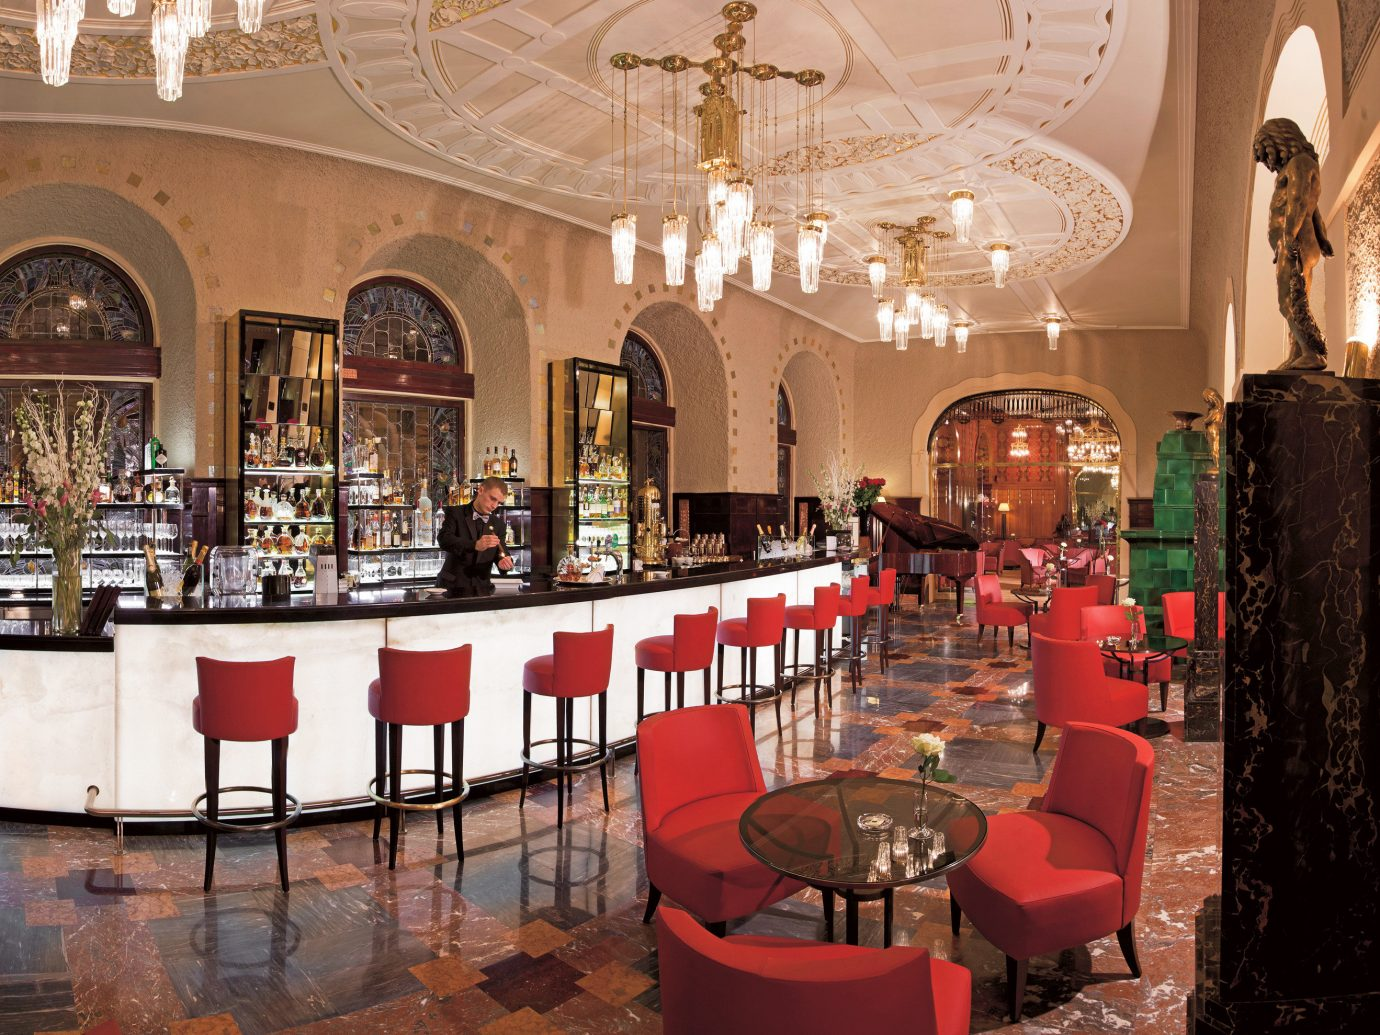 Bar Drink Eat Elegant Hotels Luxury Luxury Travel indoor wall floor red room restaurant interior design function hall meal several dining room